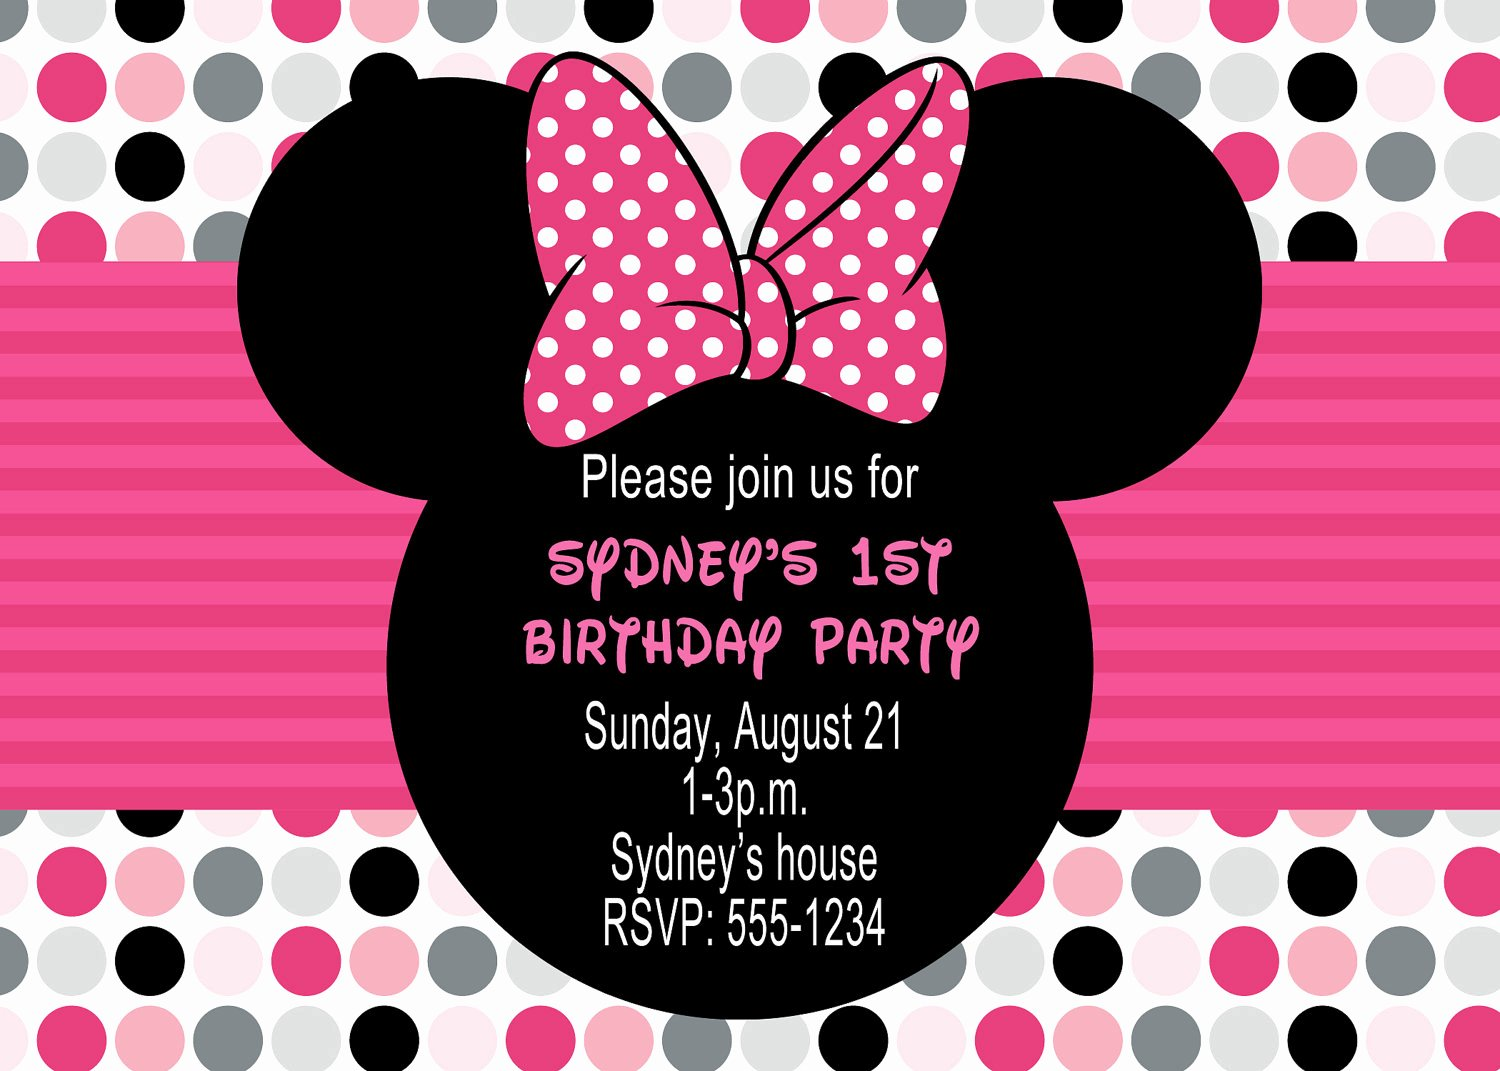 Minnie Mouse Invitation Template Elegant Minnie Mouse Birthday Party Invitations